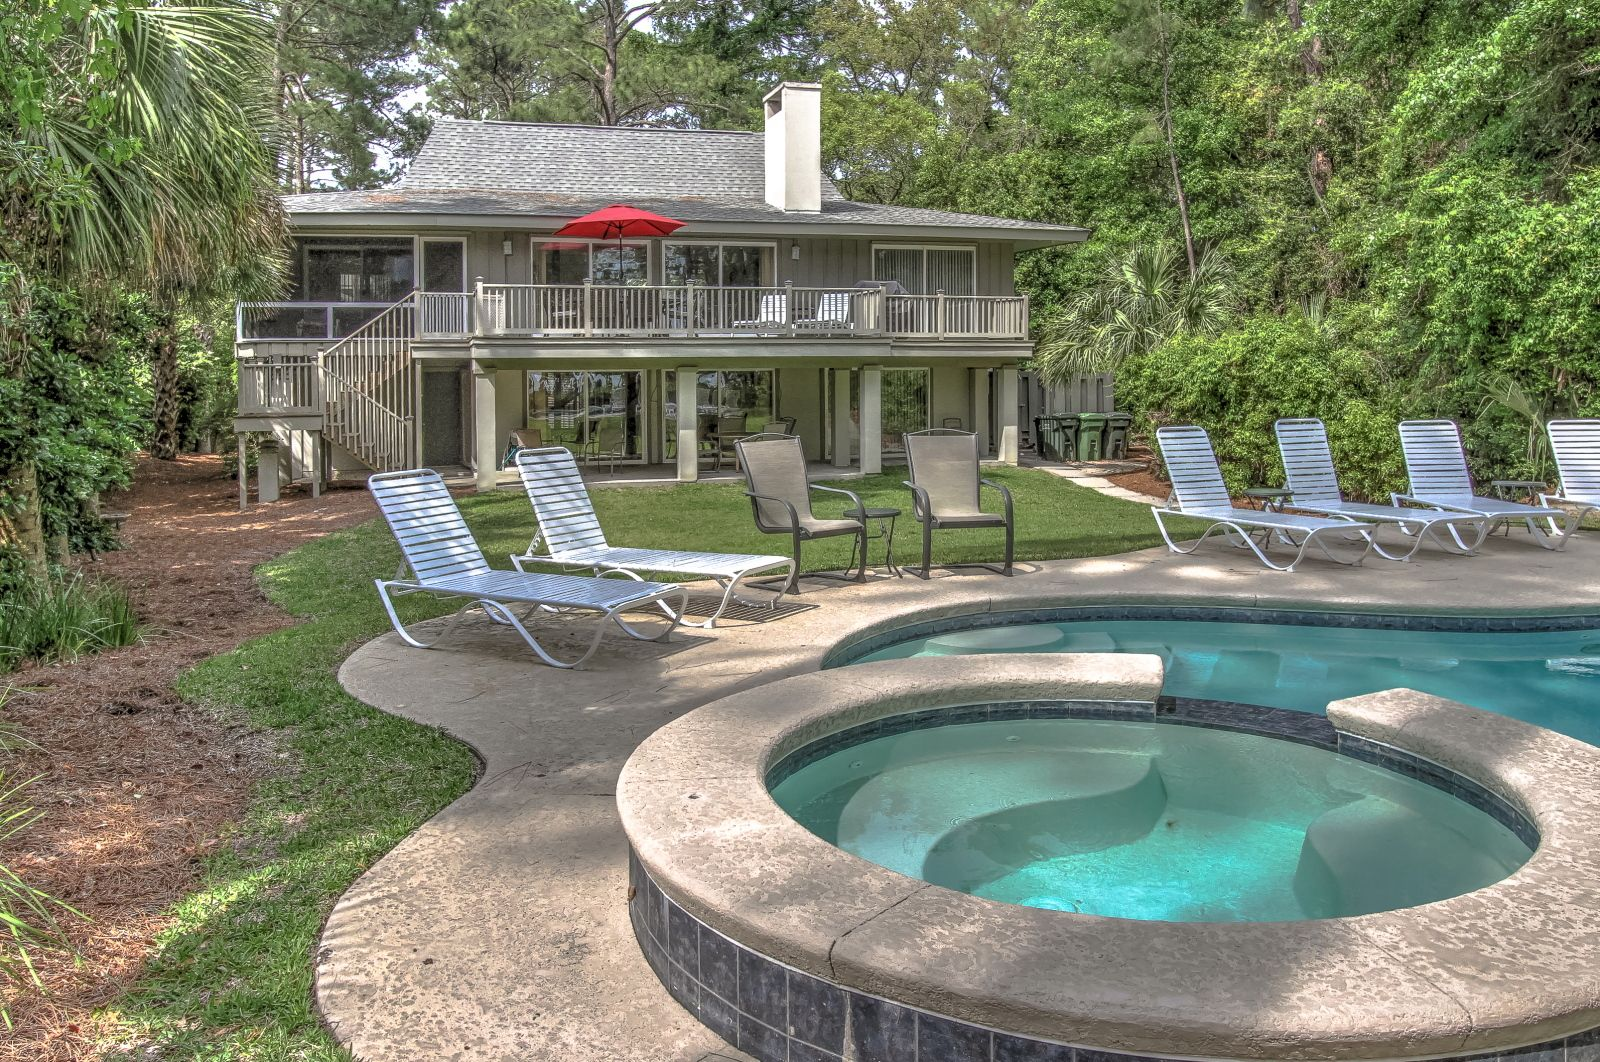 This enchanting 2 story ocean view Sea Pines home with a